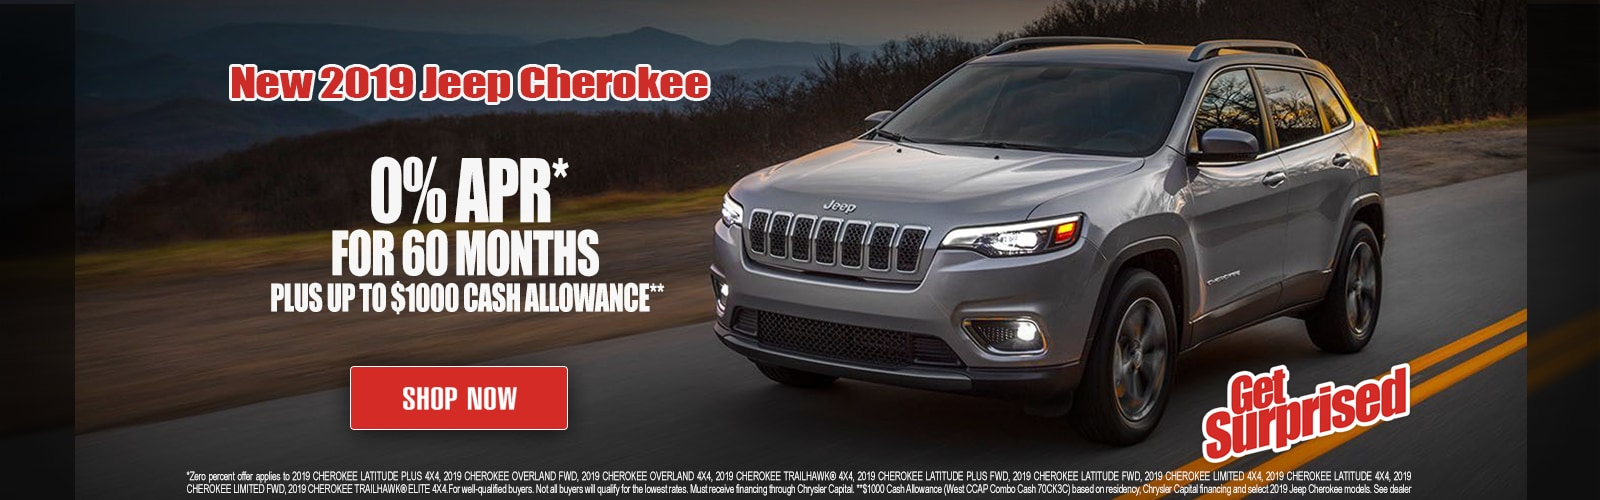 0% APR For 60 Months On 2019 Jeep Cherokee at Larry H. Miller Chrysler Jeep Dodge Ram Surprise